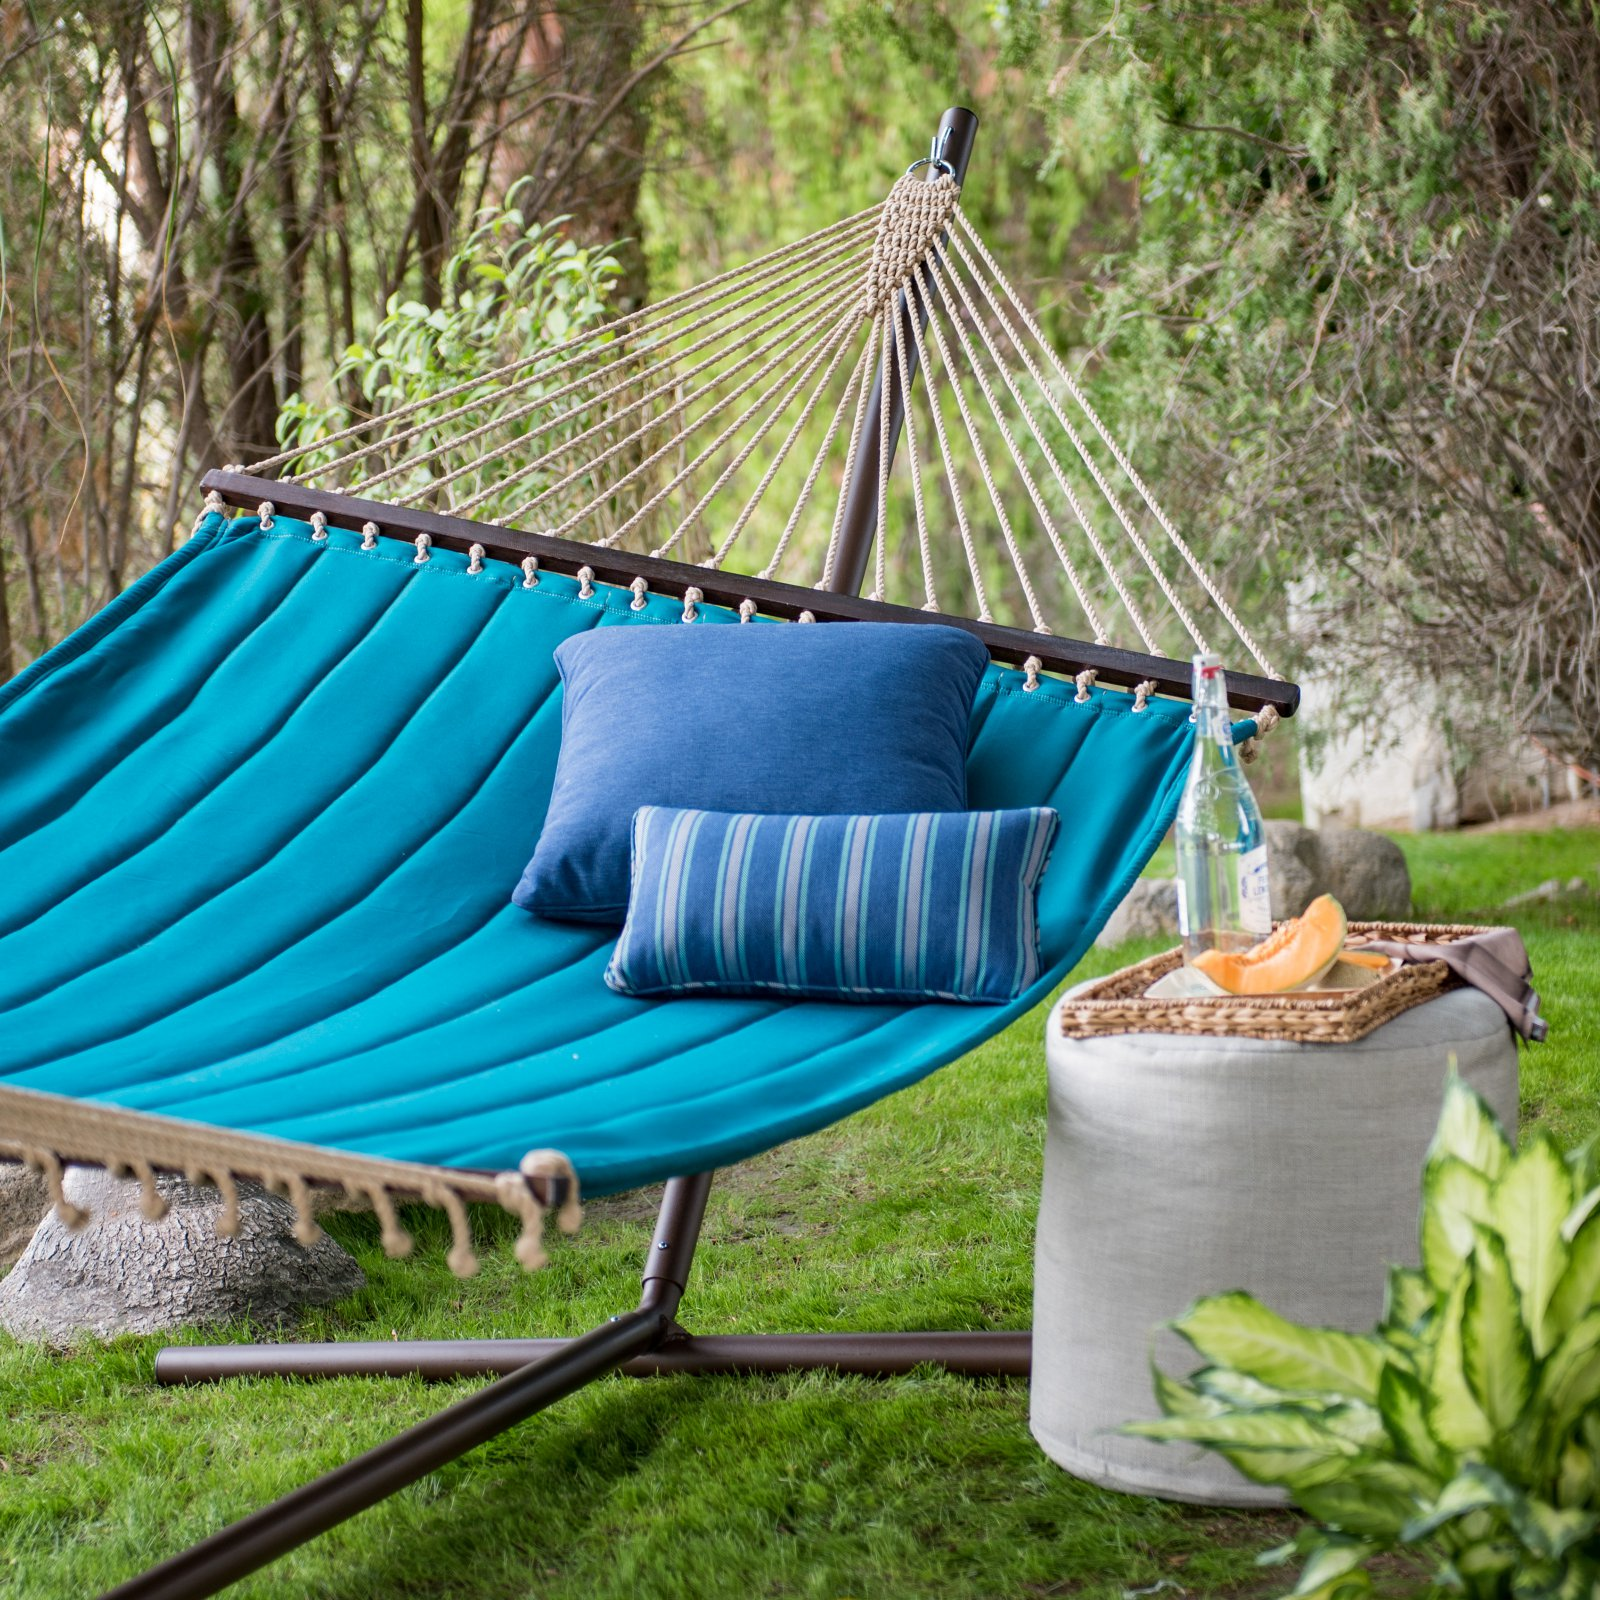 Coral Coast 13 ft. Deep Turquoise Quilted Double Hammock by